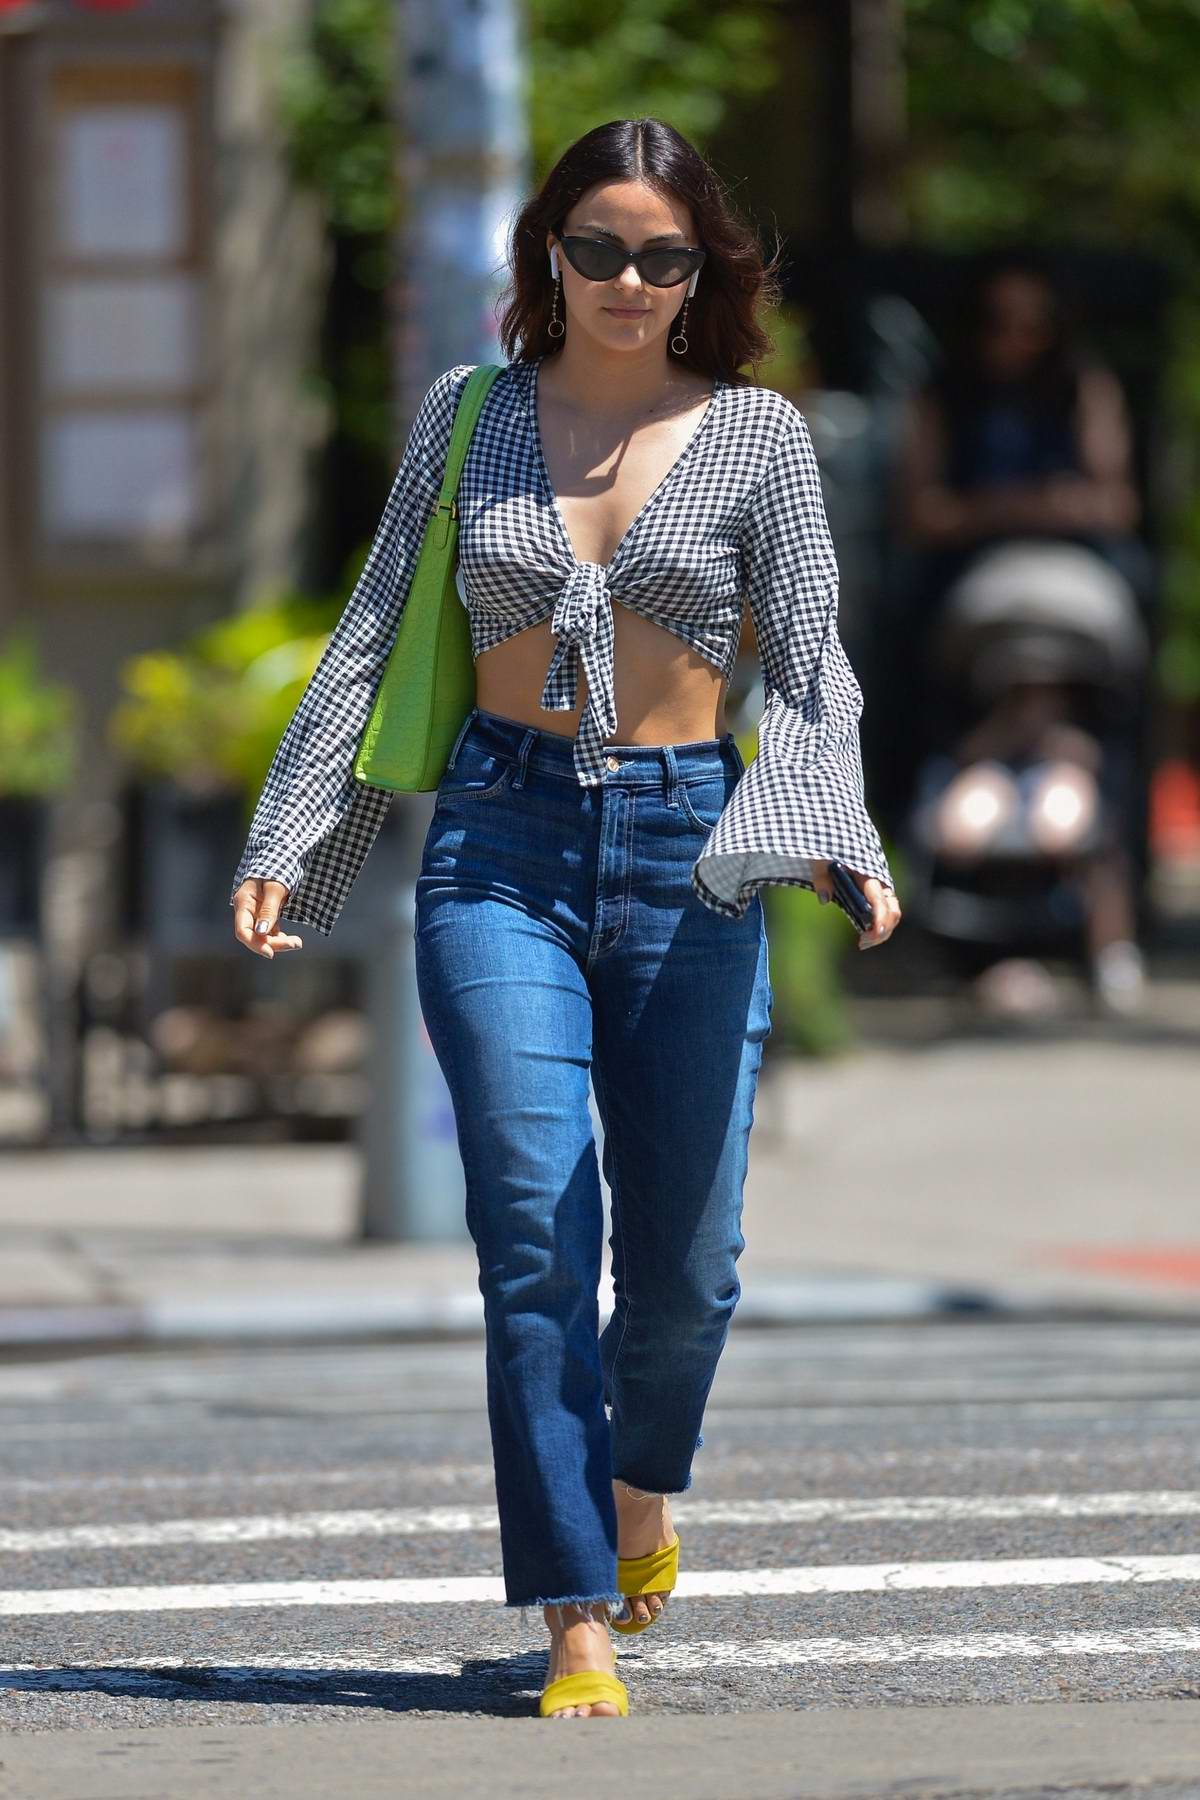 Camila Mendes wears a checkered crop top and jeans while out for a walk with Charles Melton in New York City